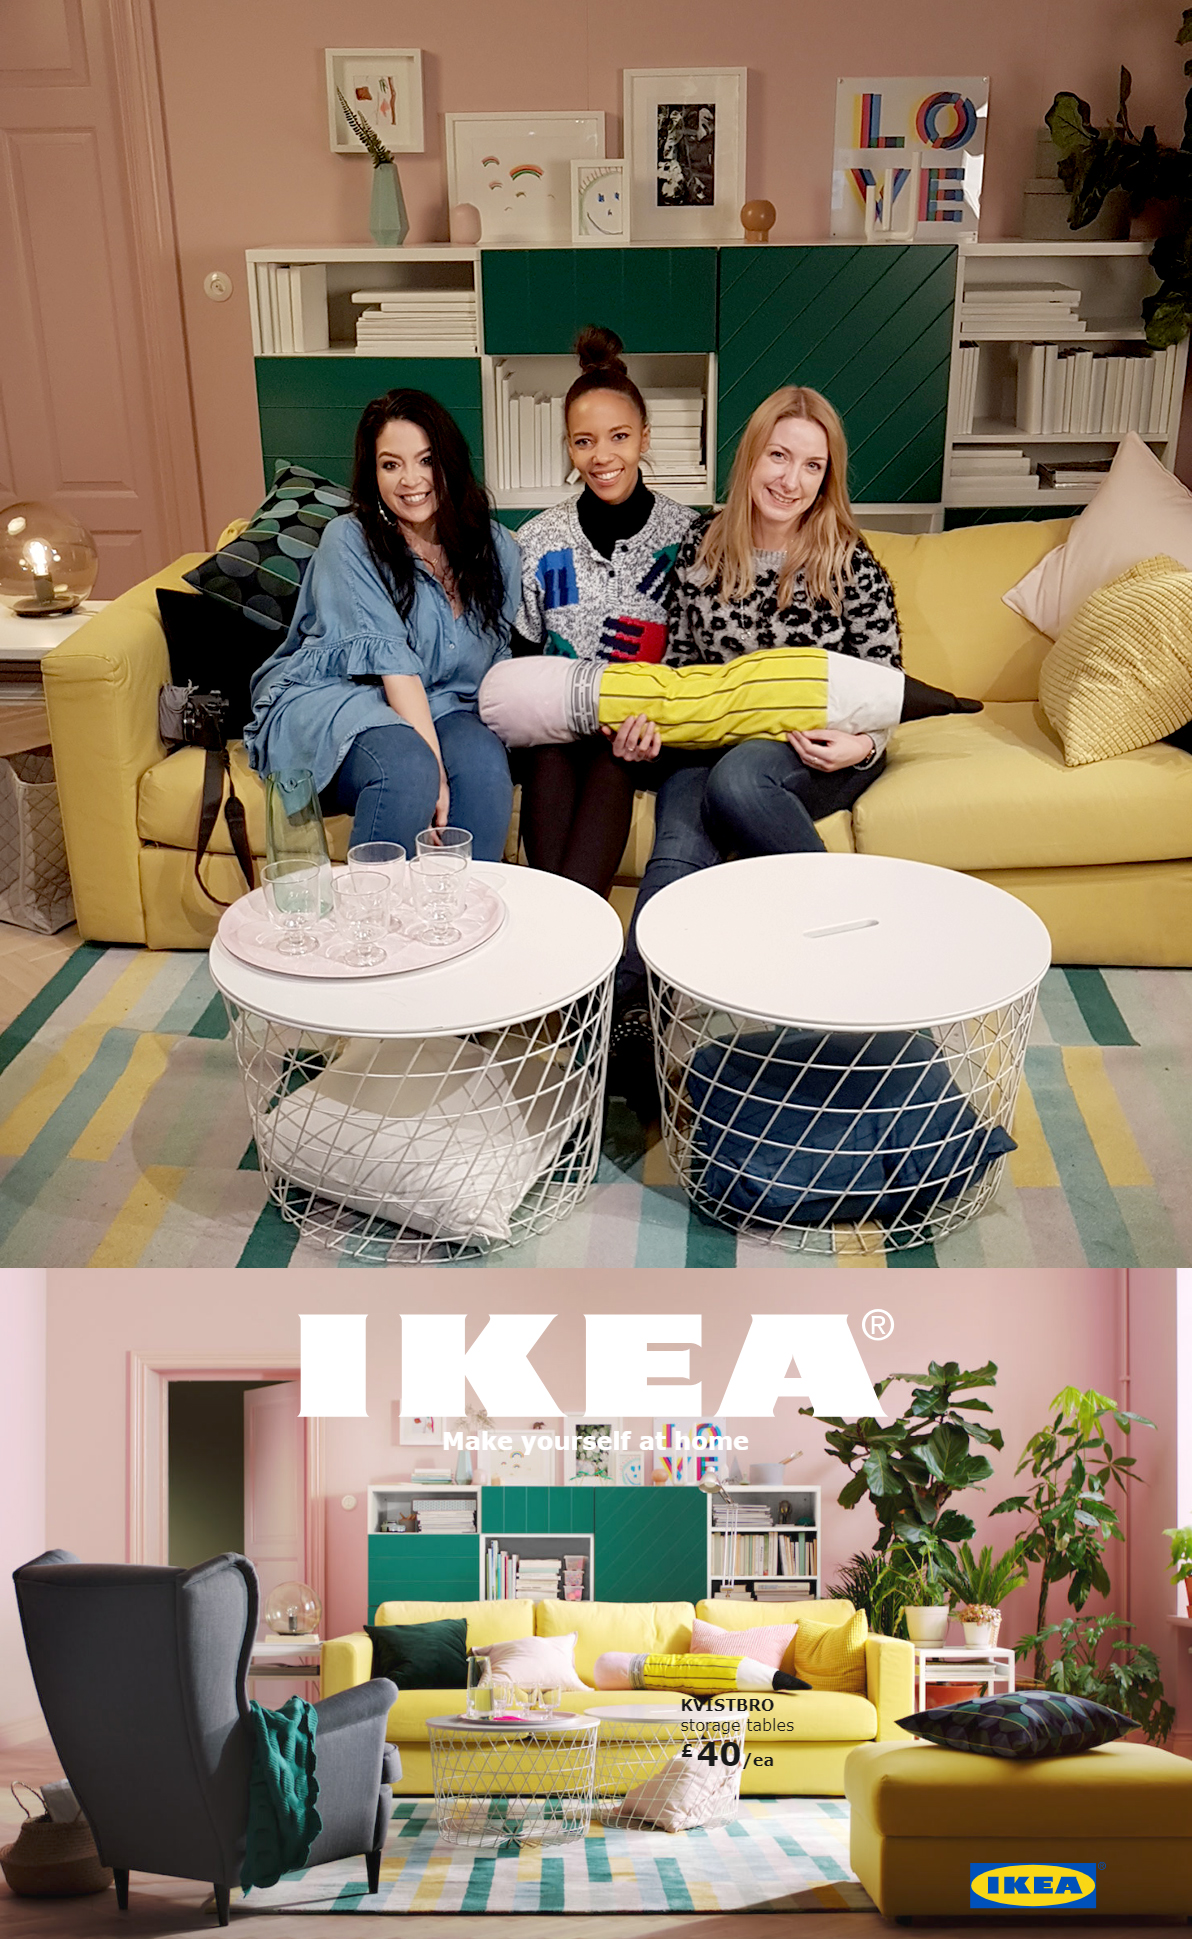 Recreating the IKEA catalogue shot